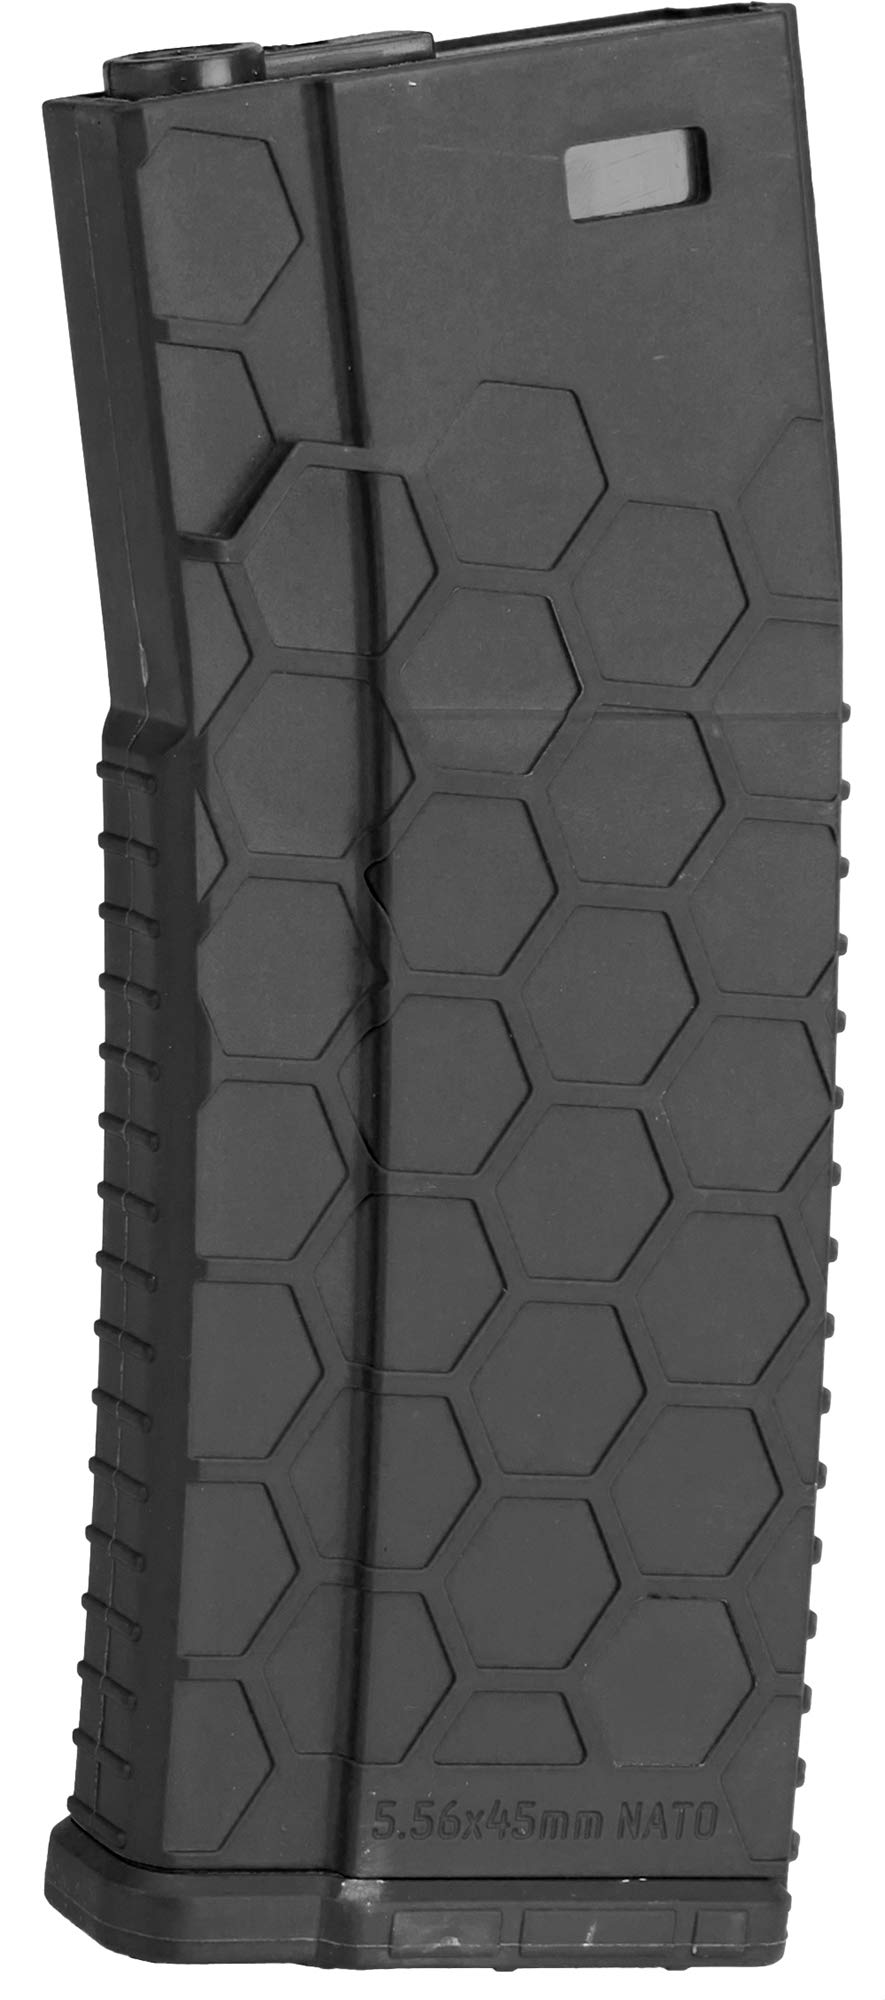 Evike Hexmag Airsoft 120rds Polymer Mid-Cap Magazine for M4 / M16 Series Airsoft AEG Rifles (Color: Black/Pack of 5) by Evike